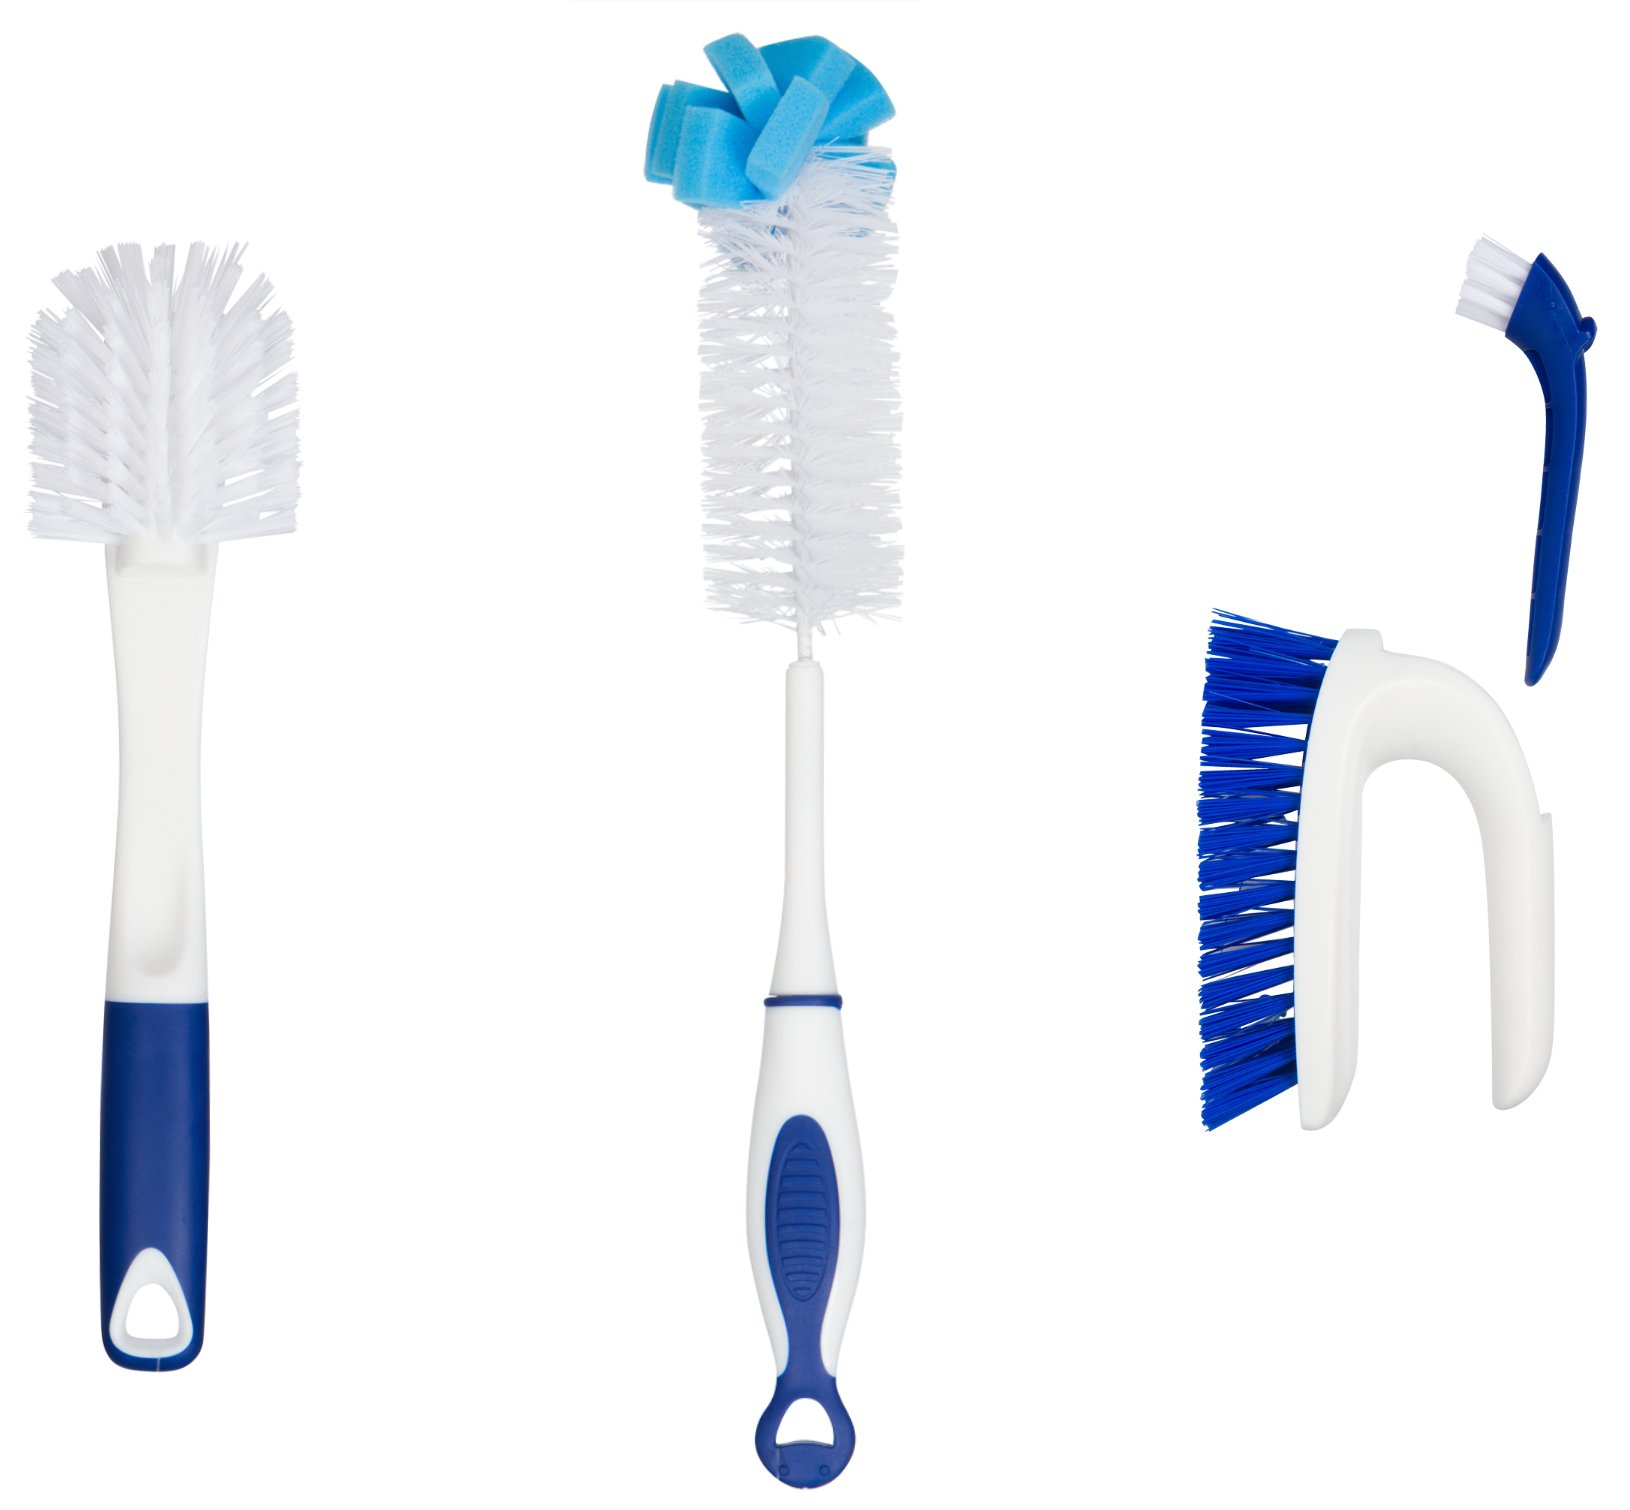 Kitchen Cleaning Tools Set – 3 Brushes Total – Bottle Brush – Pots and Pans Scrub and Scraper – 2 in 1 Sink and Surface Scrub Brush That Contains A Mini Detail Brush 61xCES9HUlL